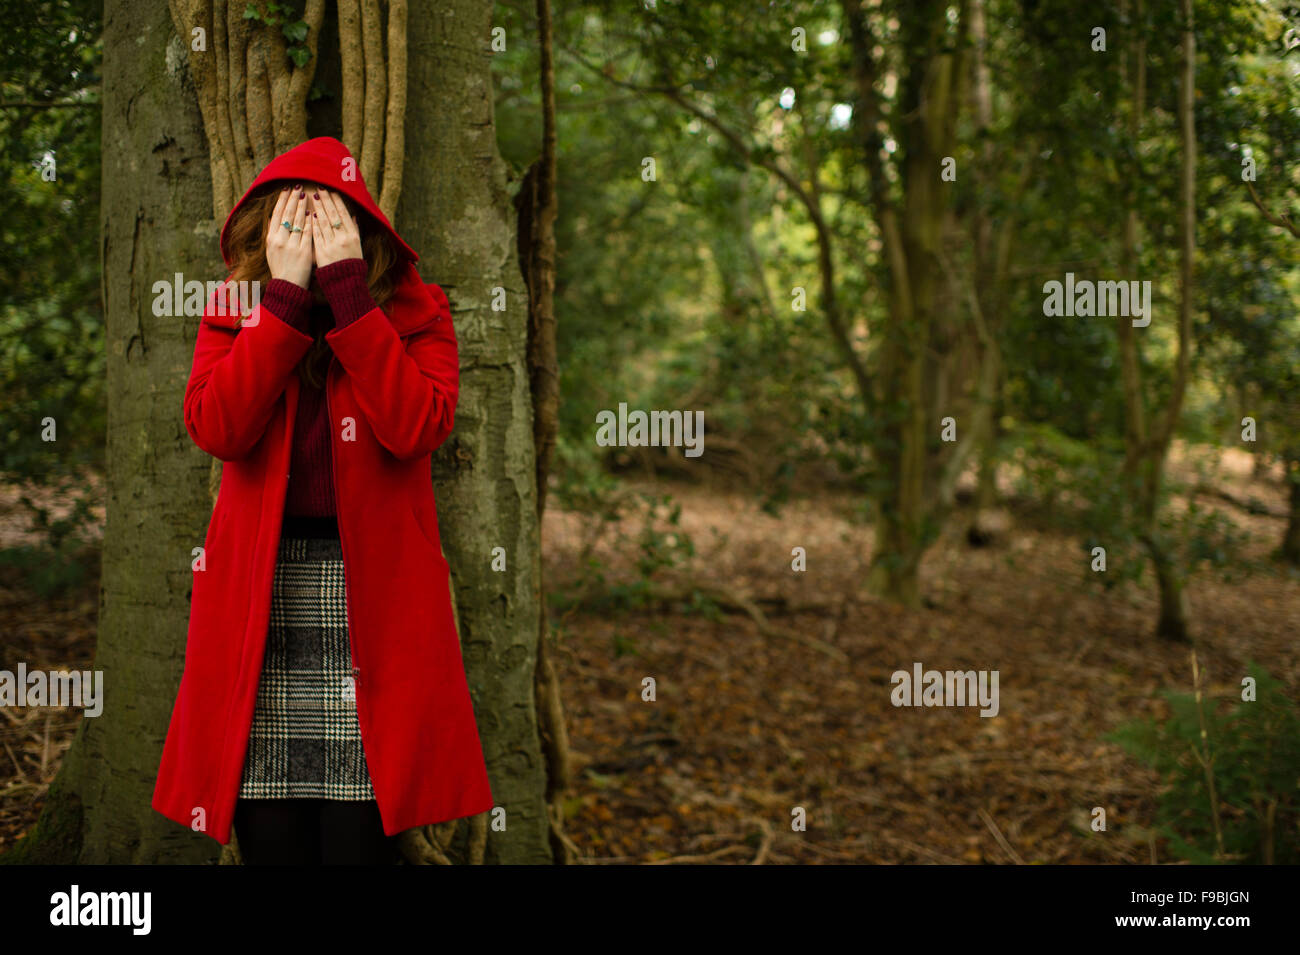 A young woman alone in woodland wearing a 'red riding hood' coat, covering her eyes, playing hide and seek, - Stock Image